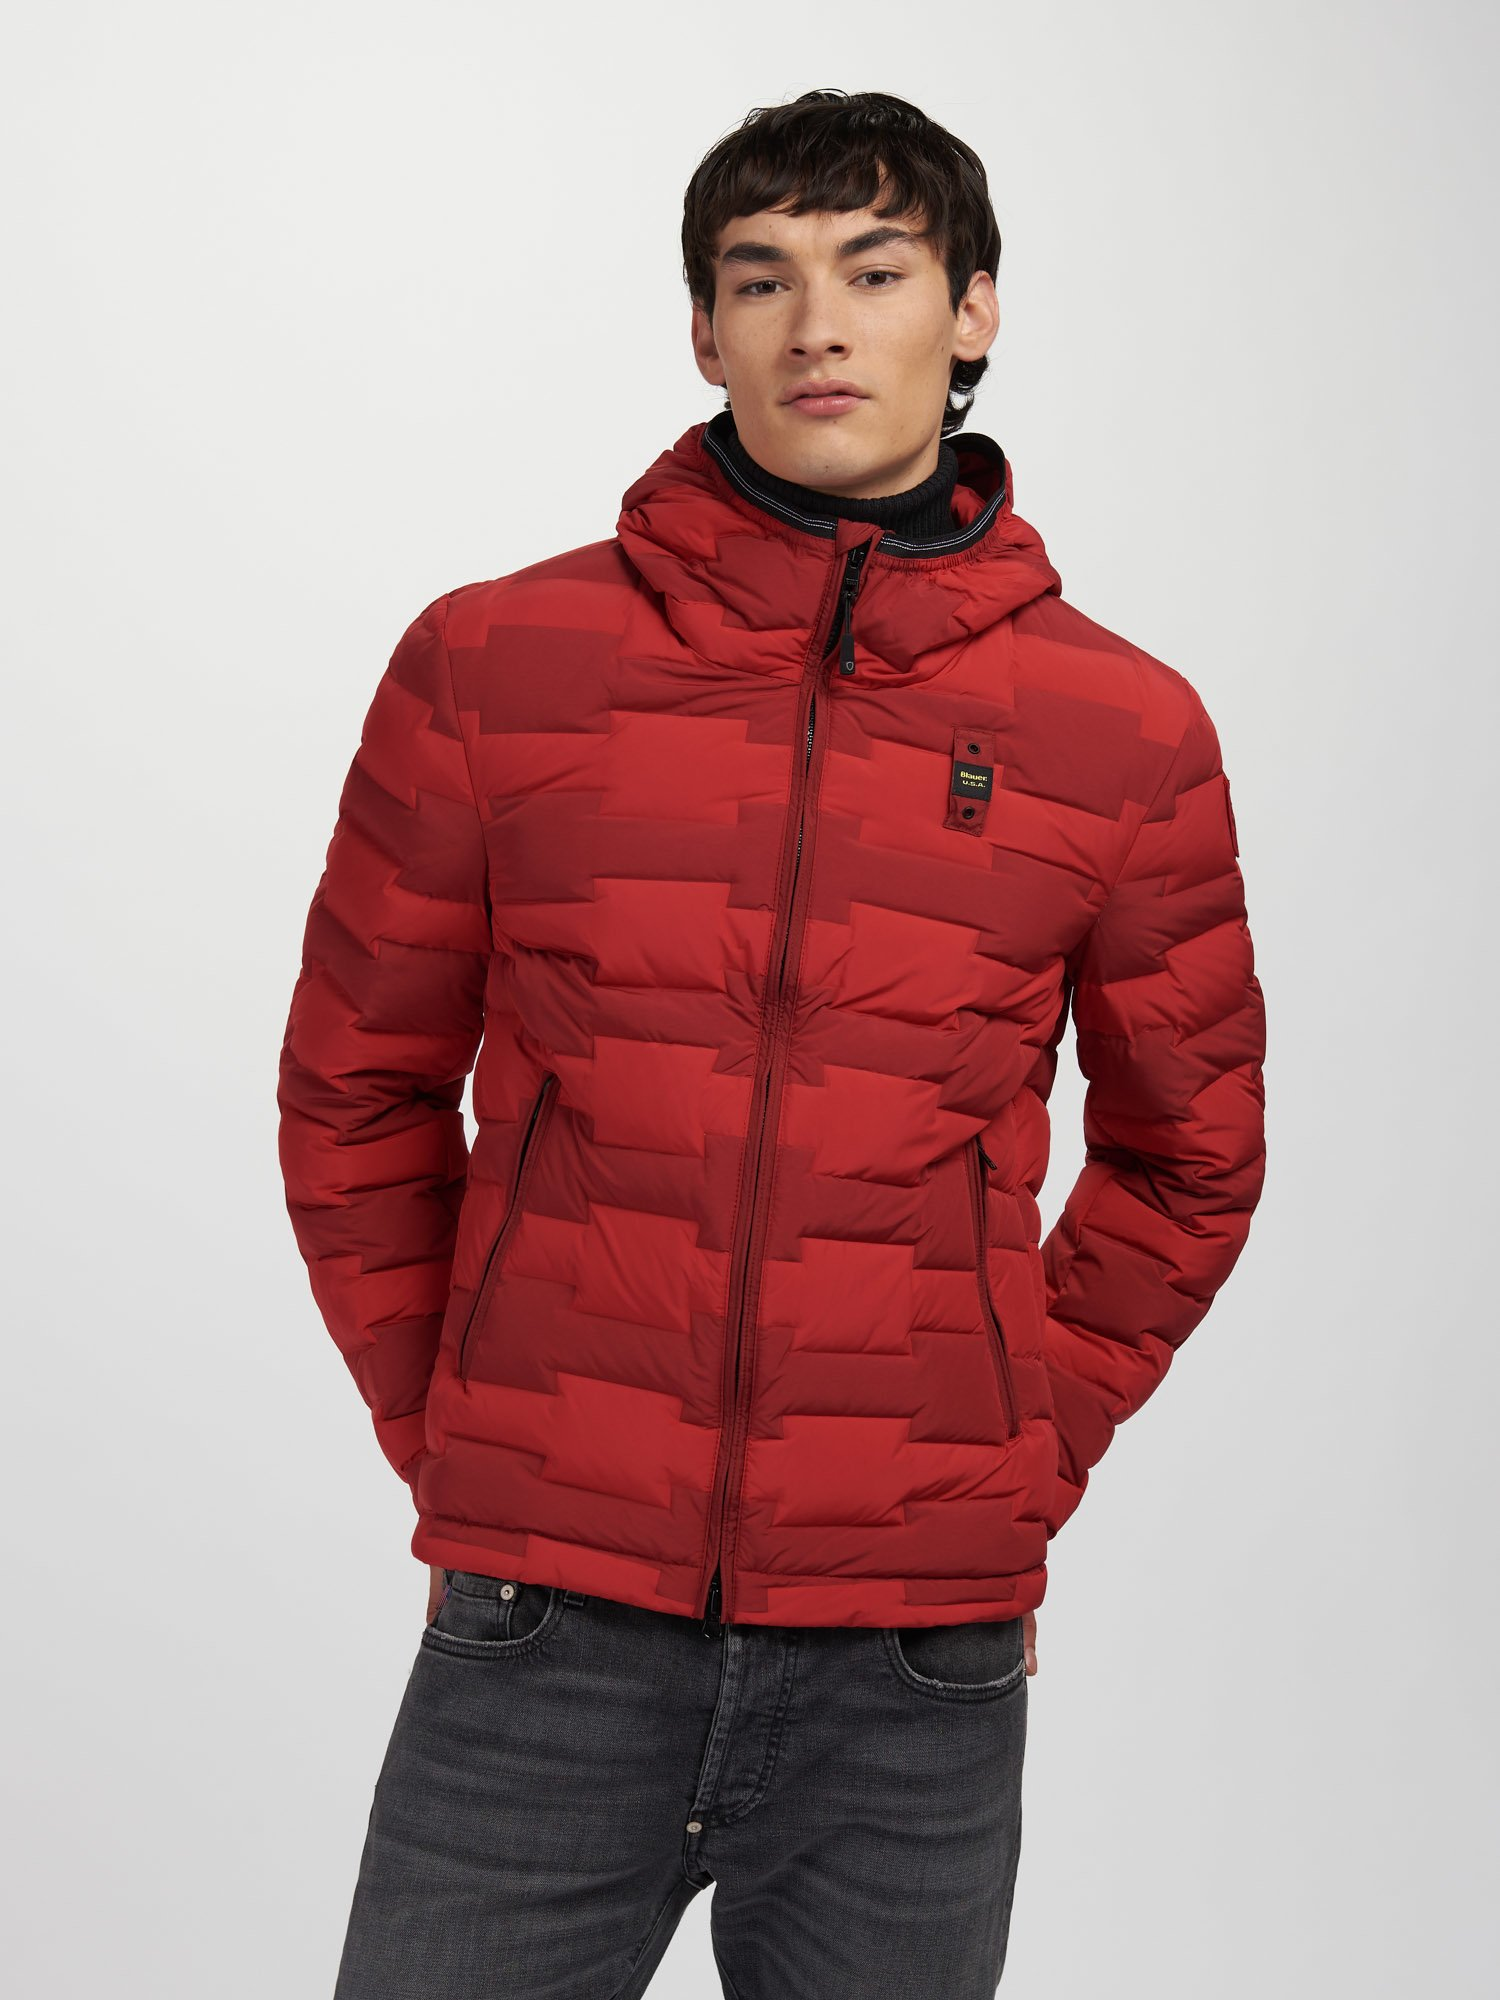 RANDY LIGHT-DARK DOWN JACKET - Blauer